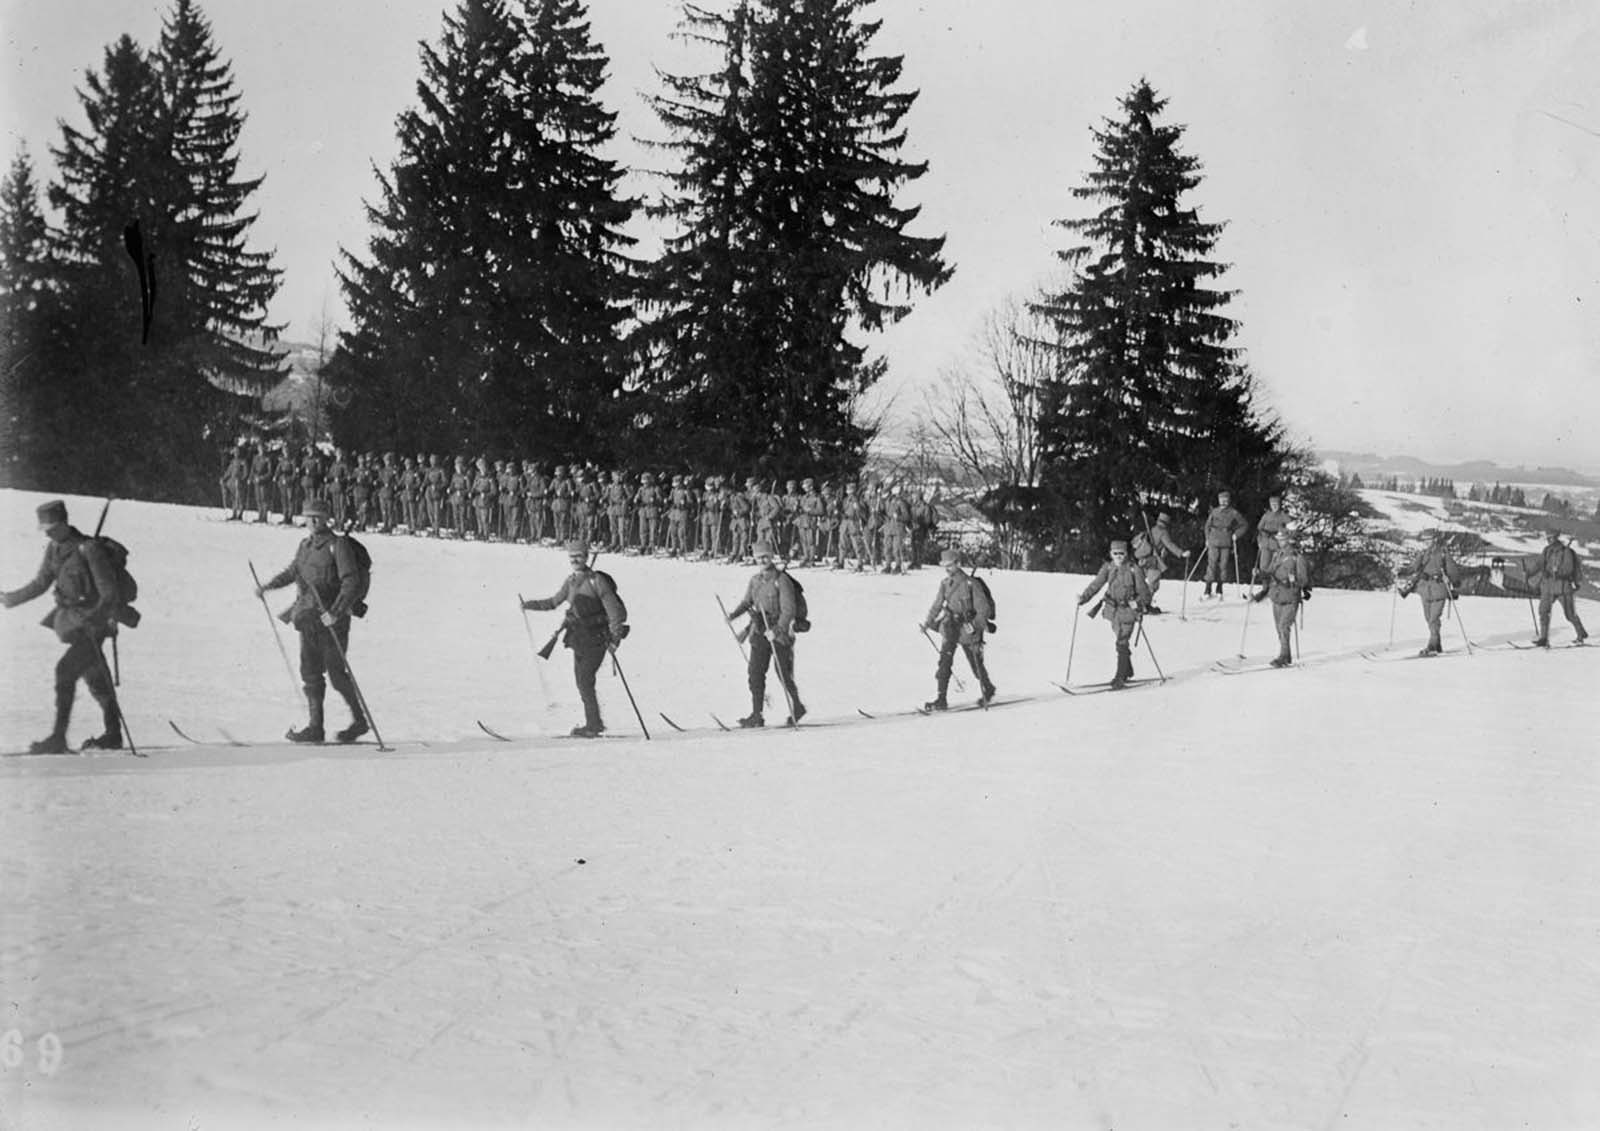 Austrian soldiers move out on skis. 1915.